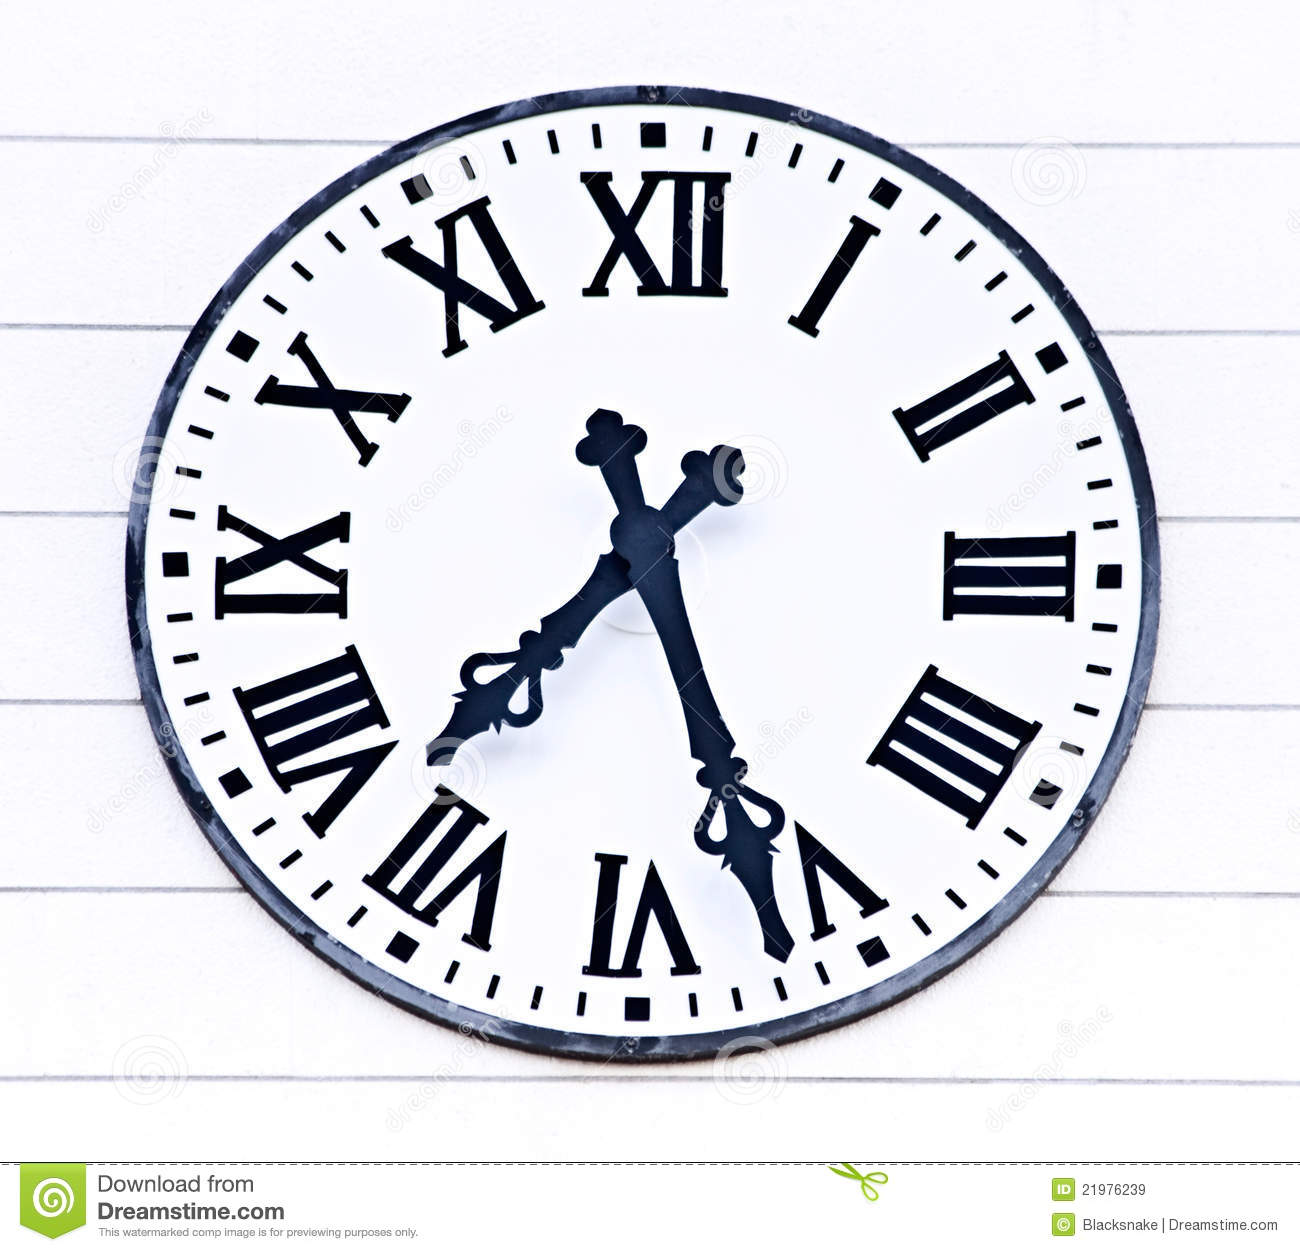 graphic free download Clocks clipart church. The clock free cliparts.